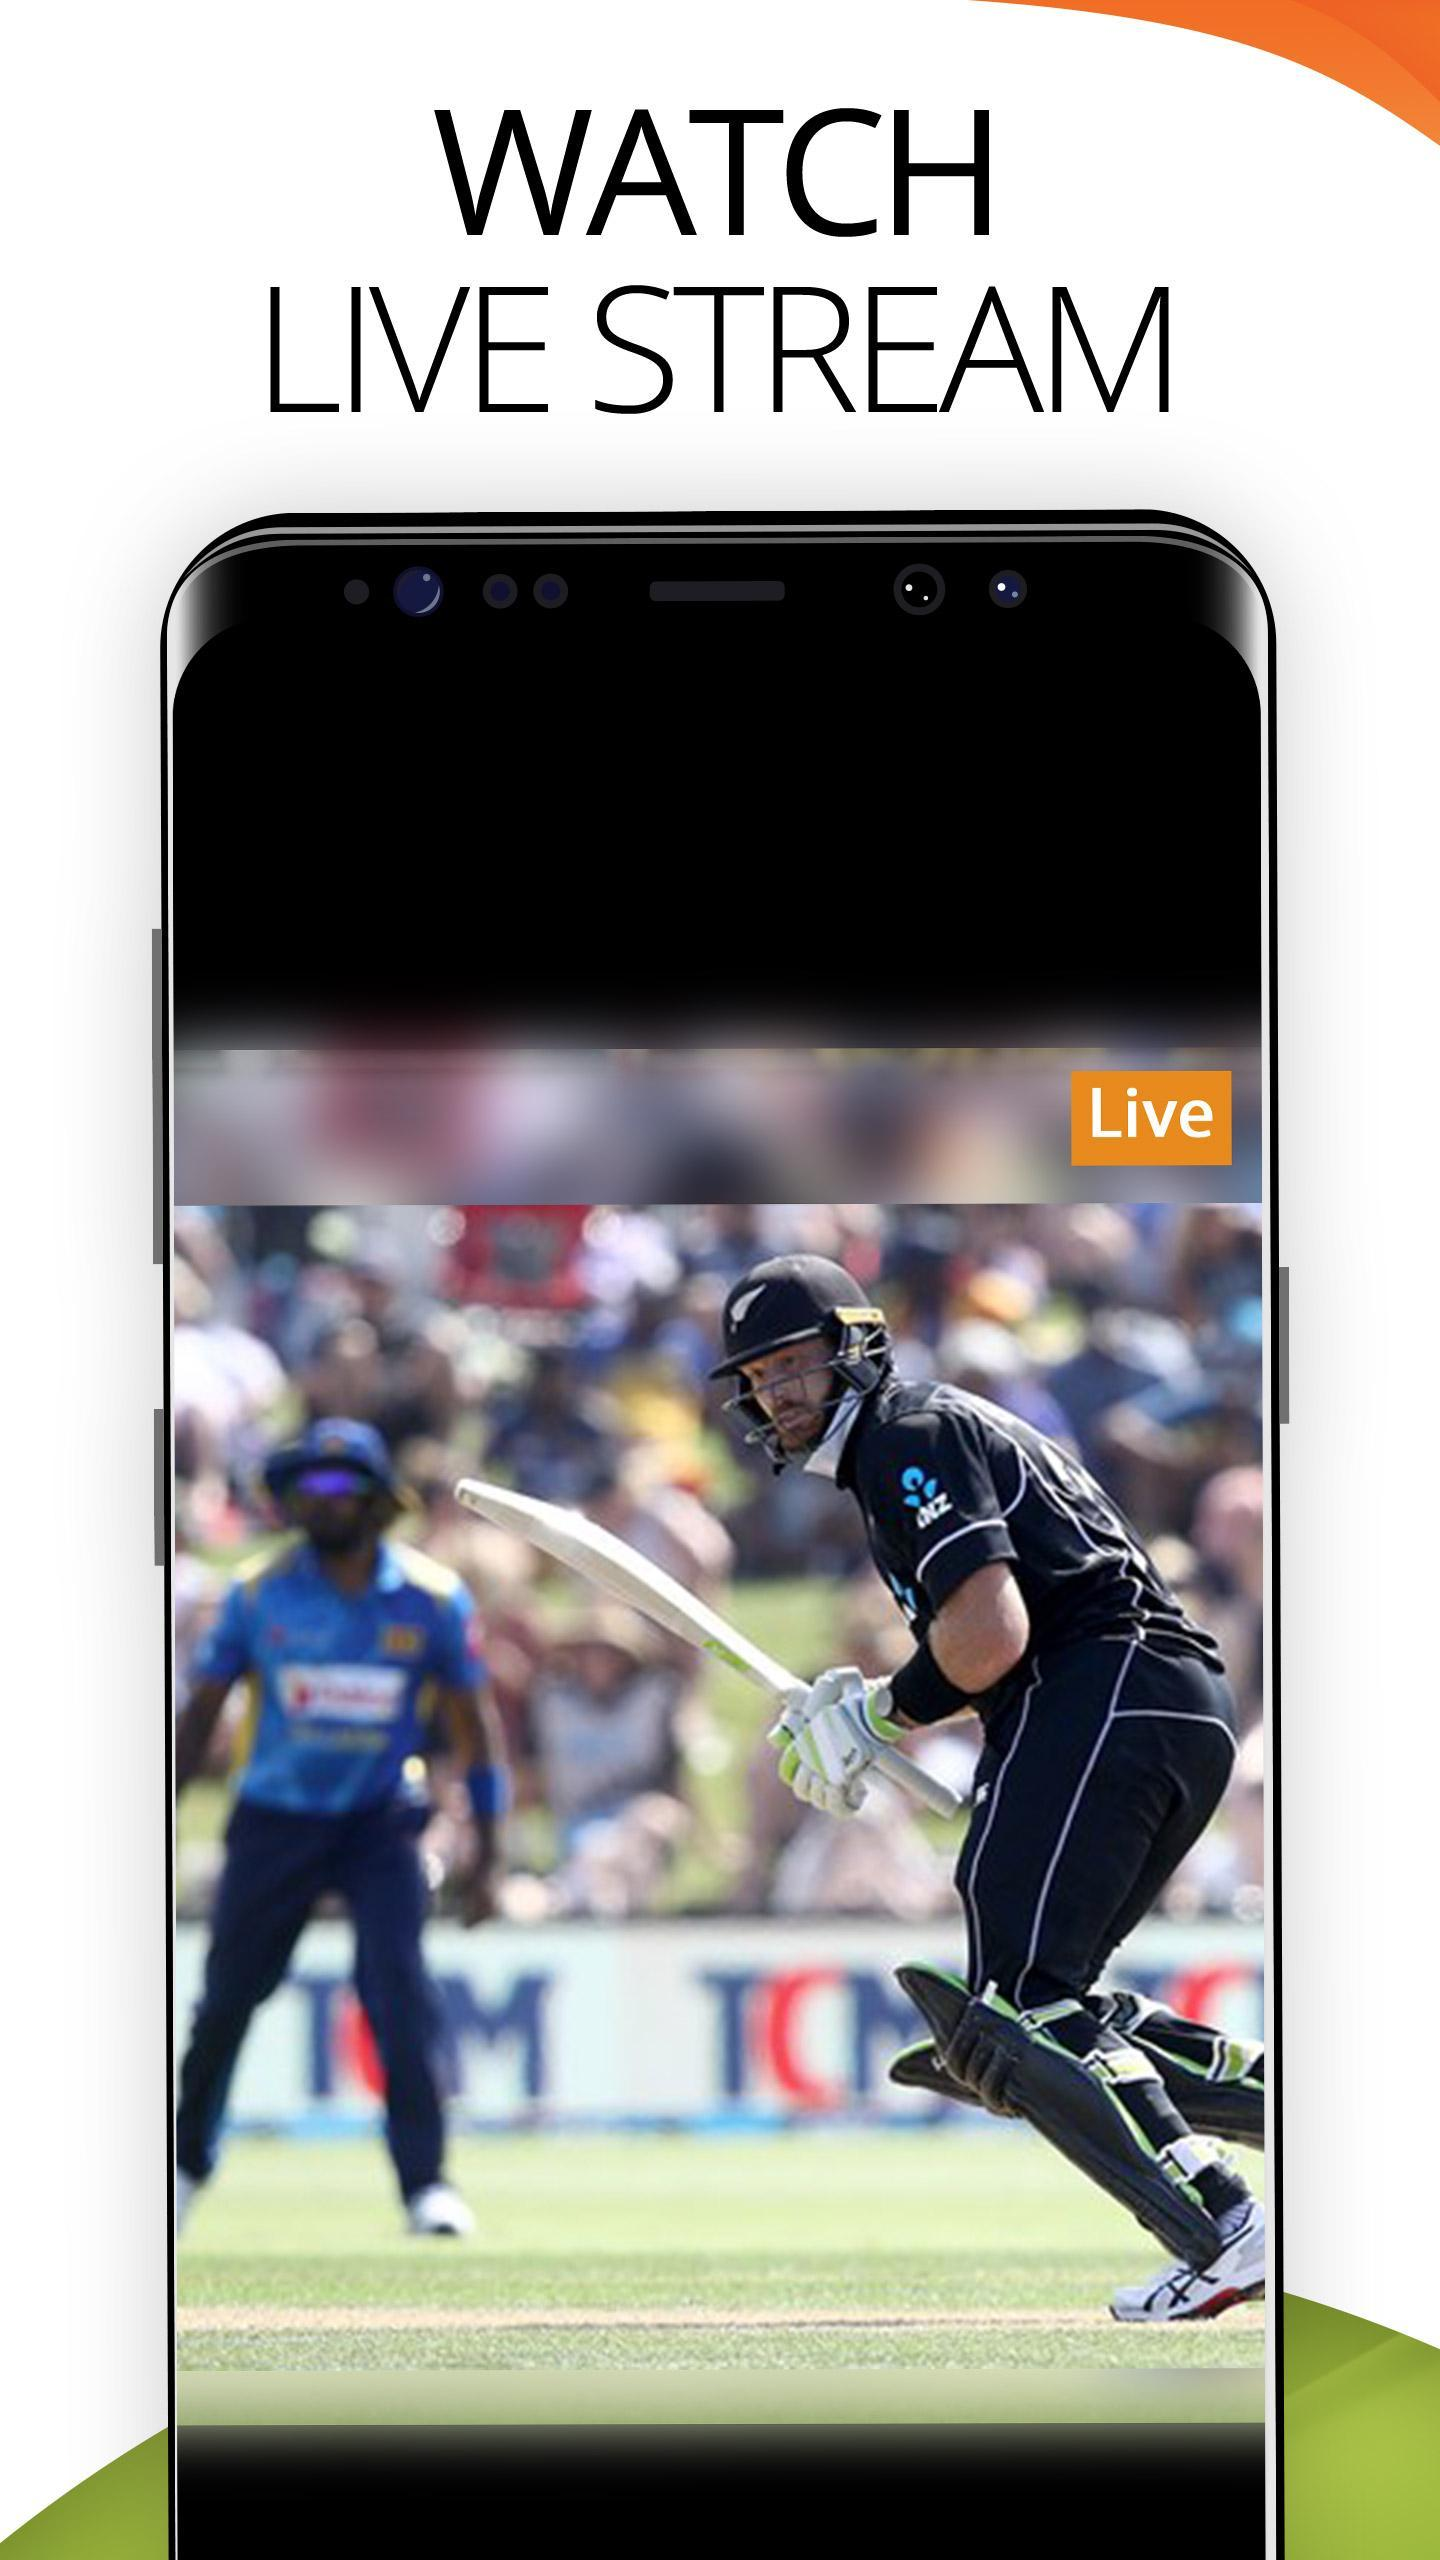 Ufone Cricket for Android - APK Download